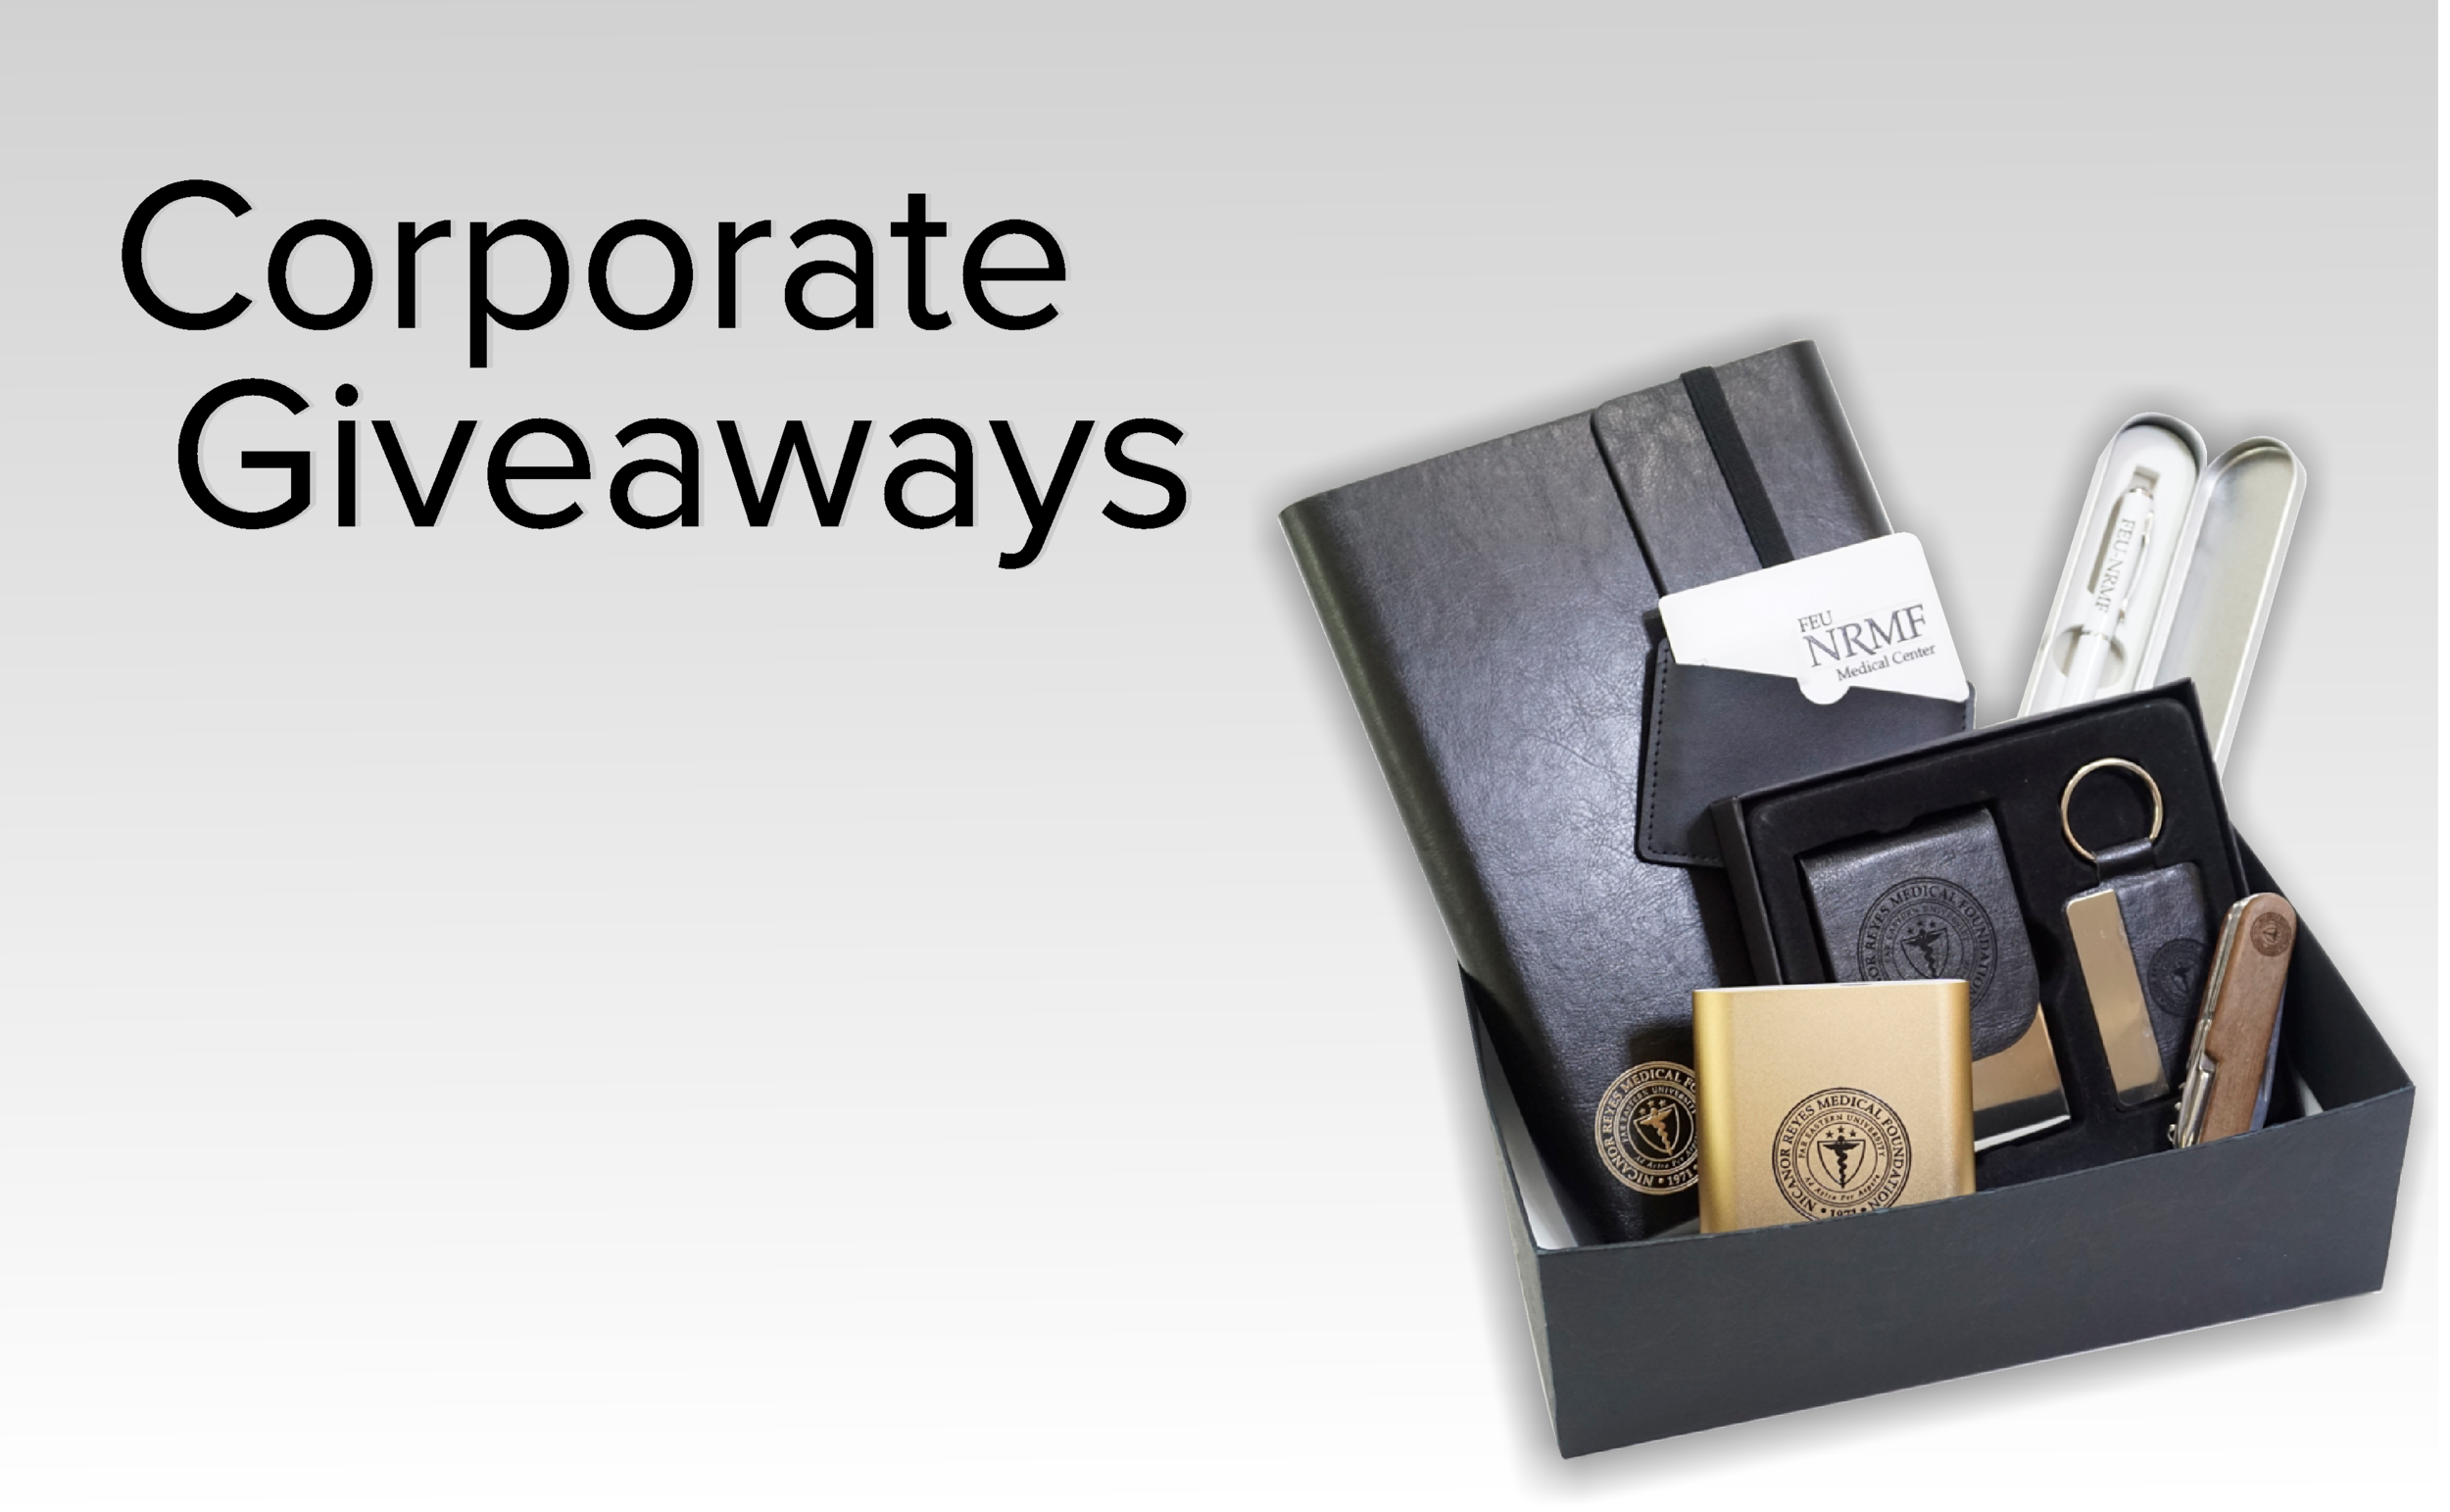 Corporate Giveaways Supplier